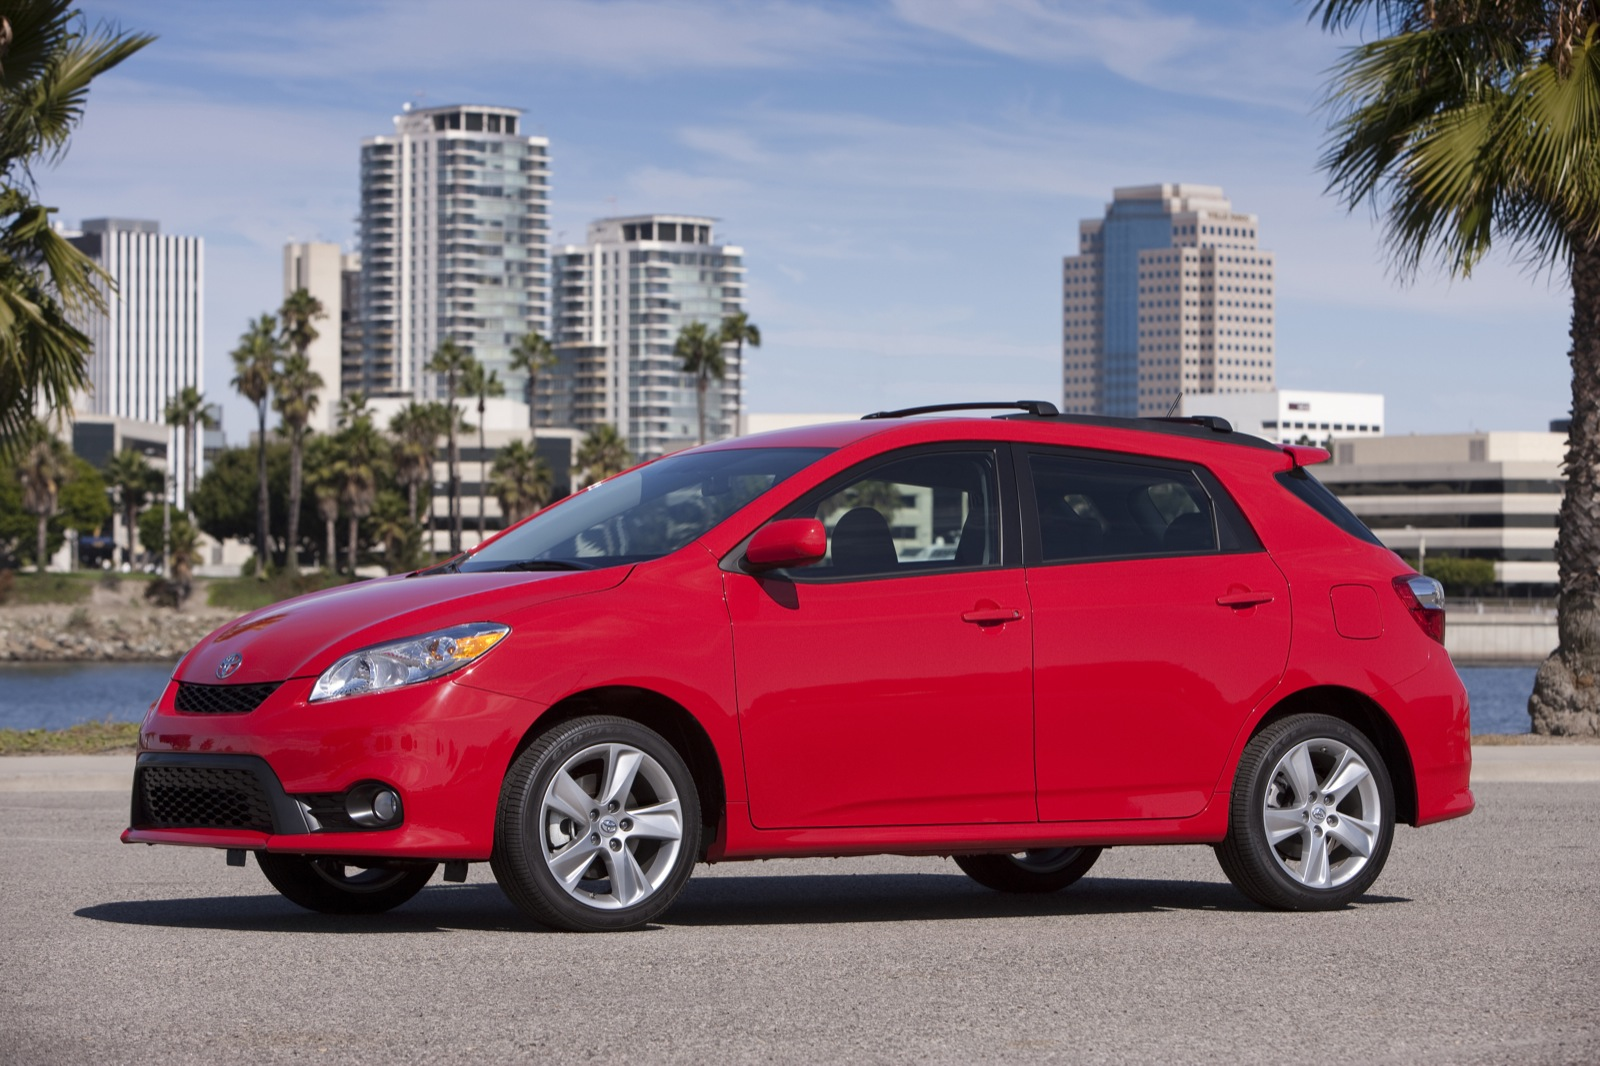 BMW Of El Paso >> 2013 Toyota Matrix Review, Ratings, Specs, Prices, and ...